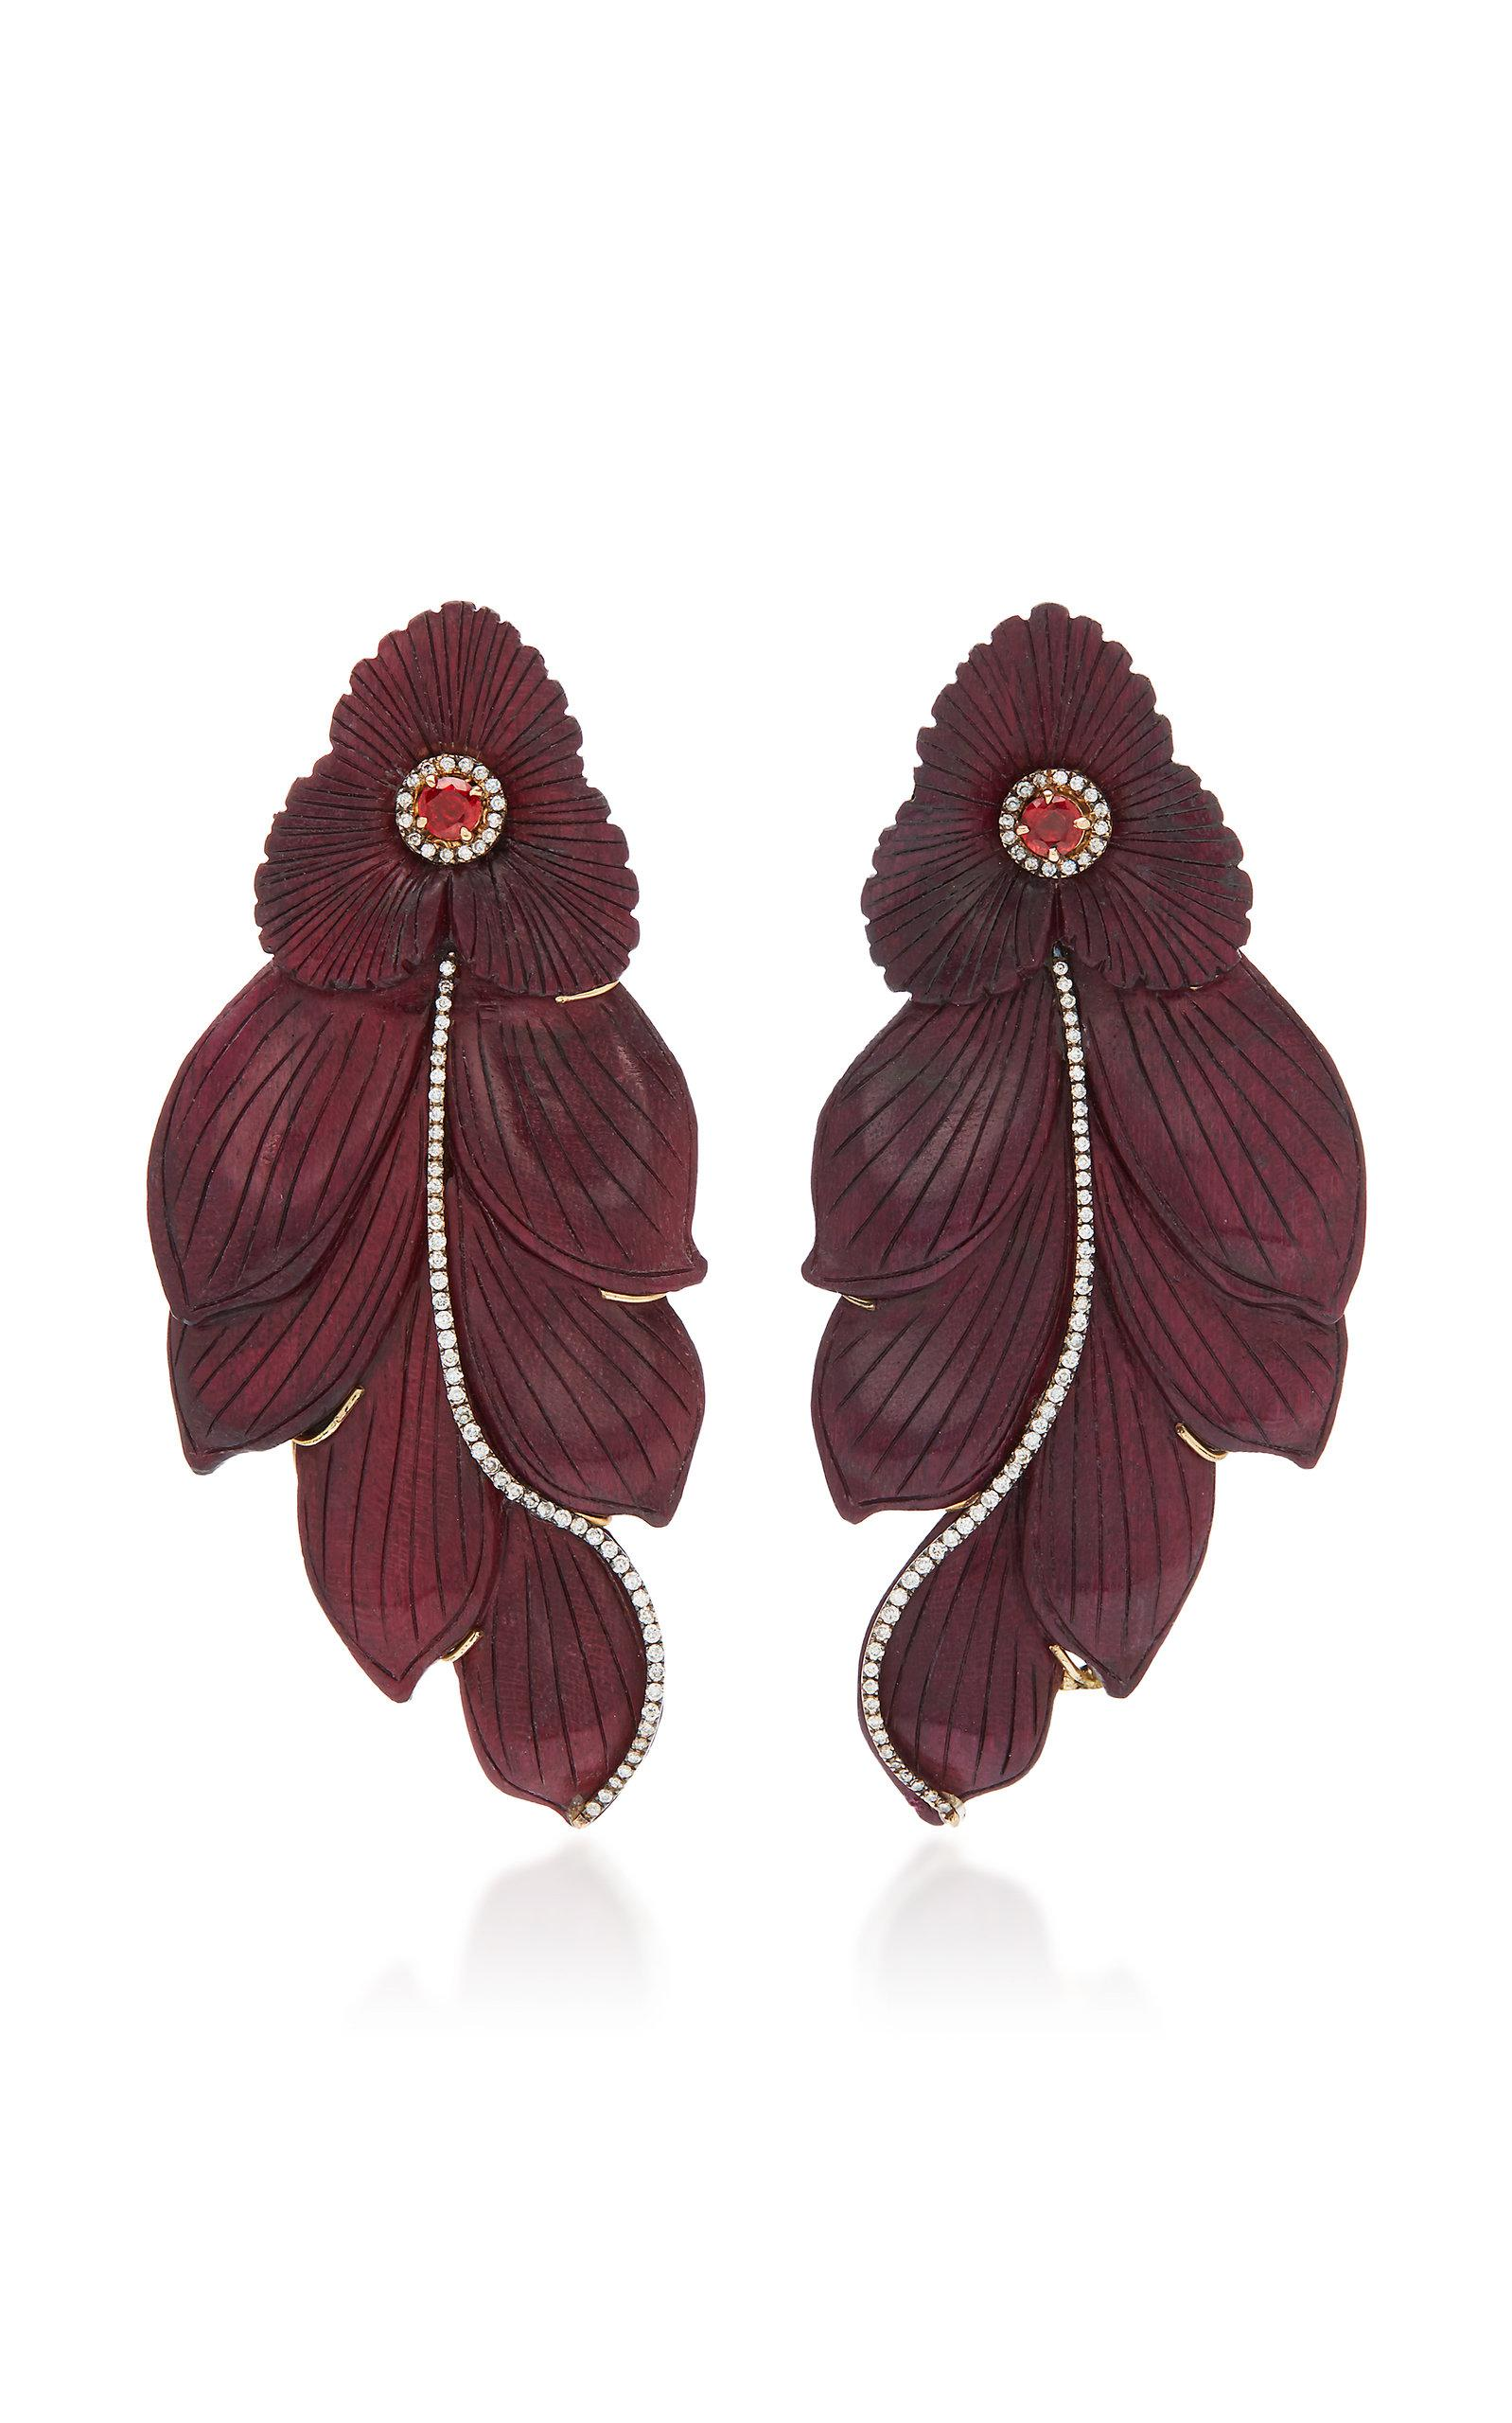 MO Exclusive: Marquetry Water Lily Earrings Silvia Furmanovich 8Et28Em9